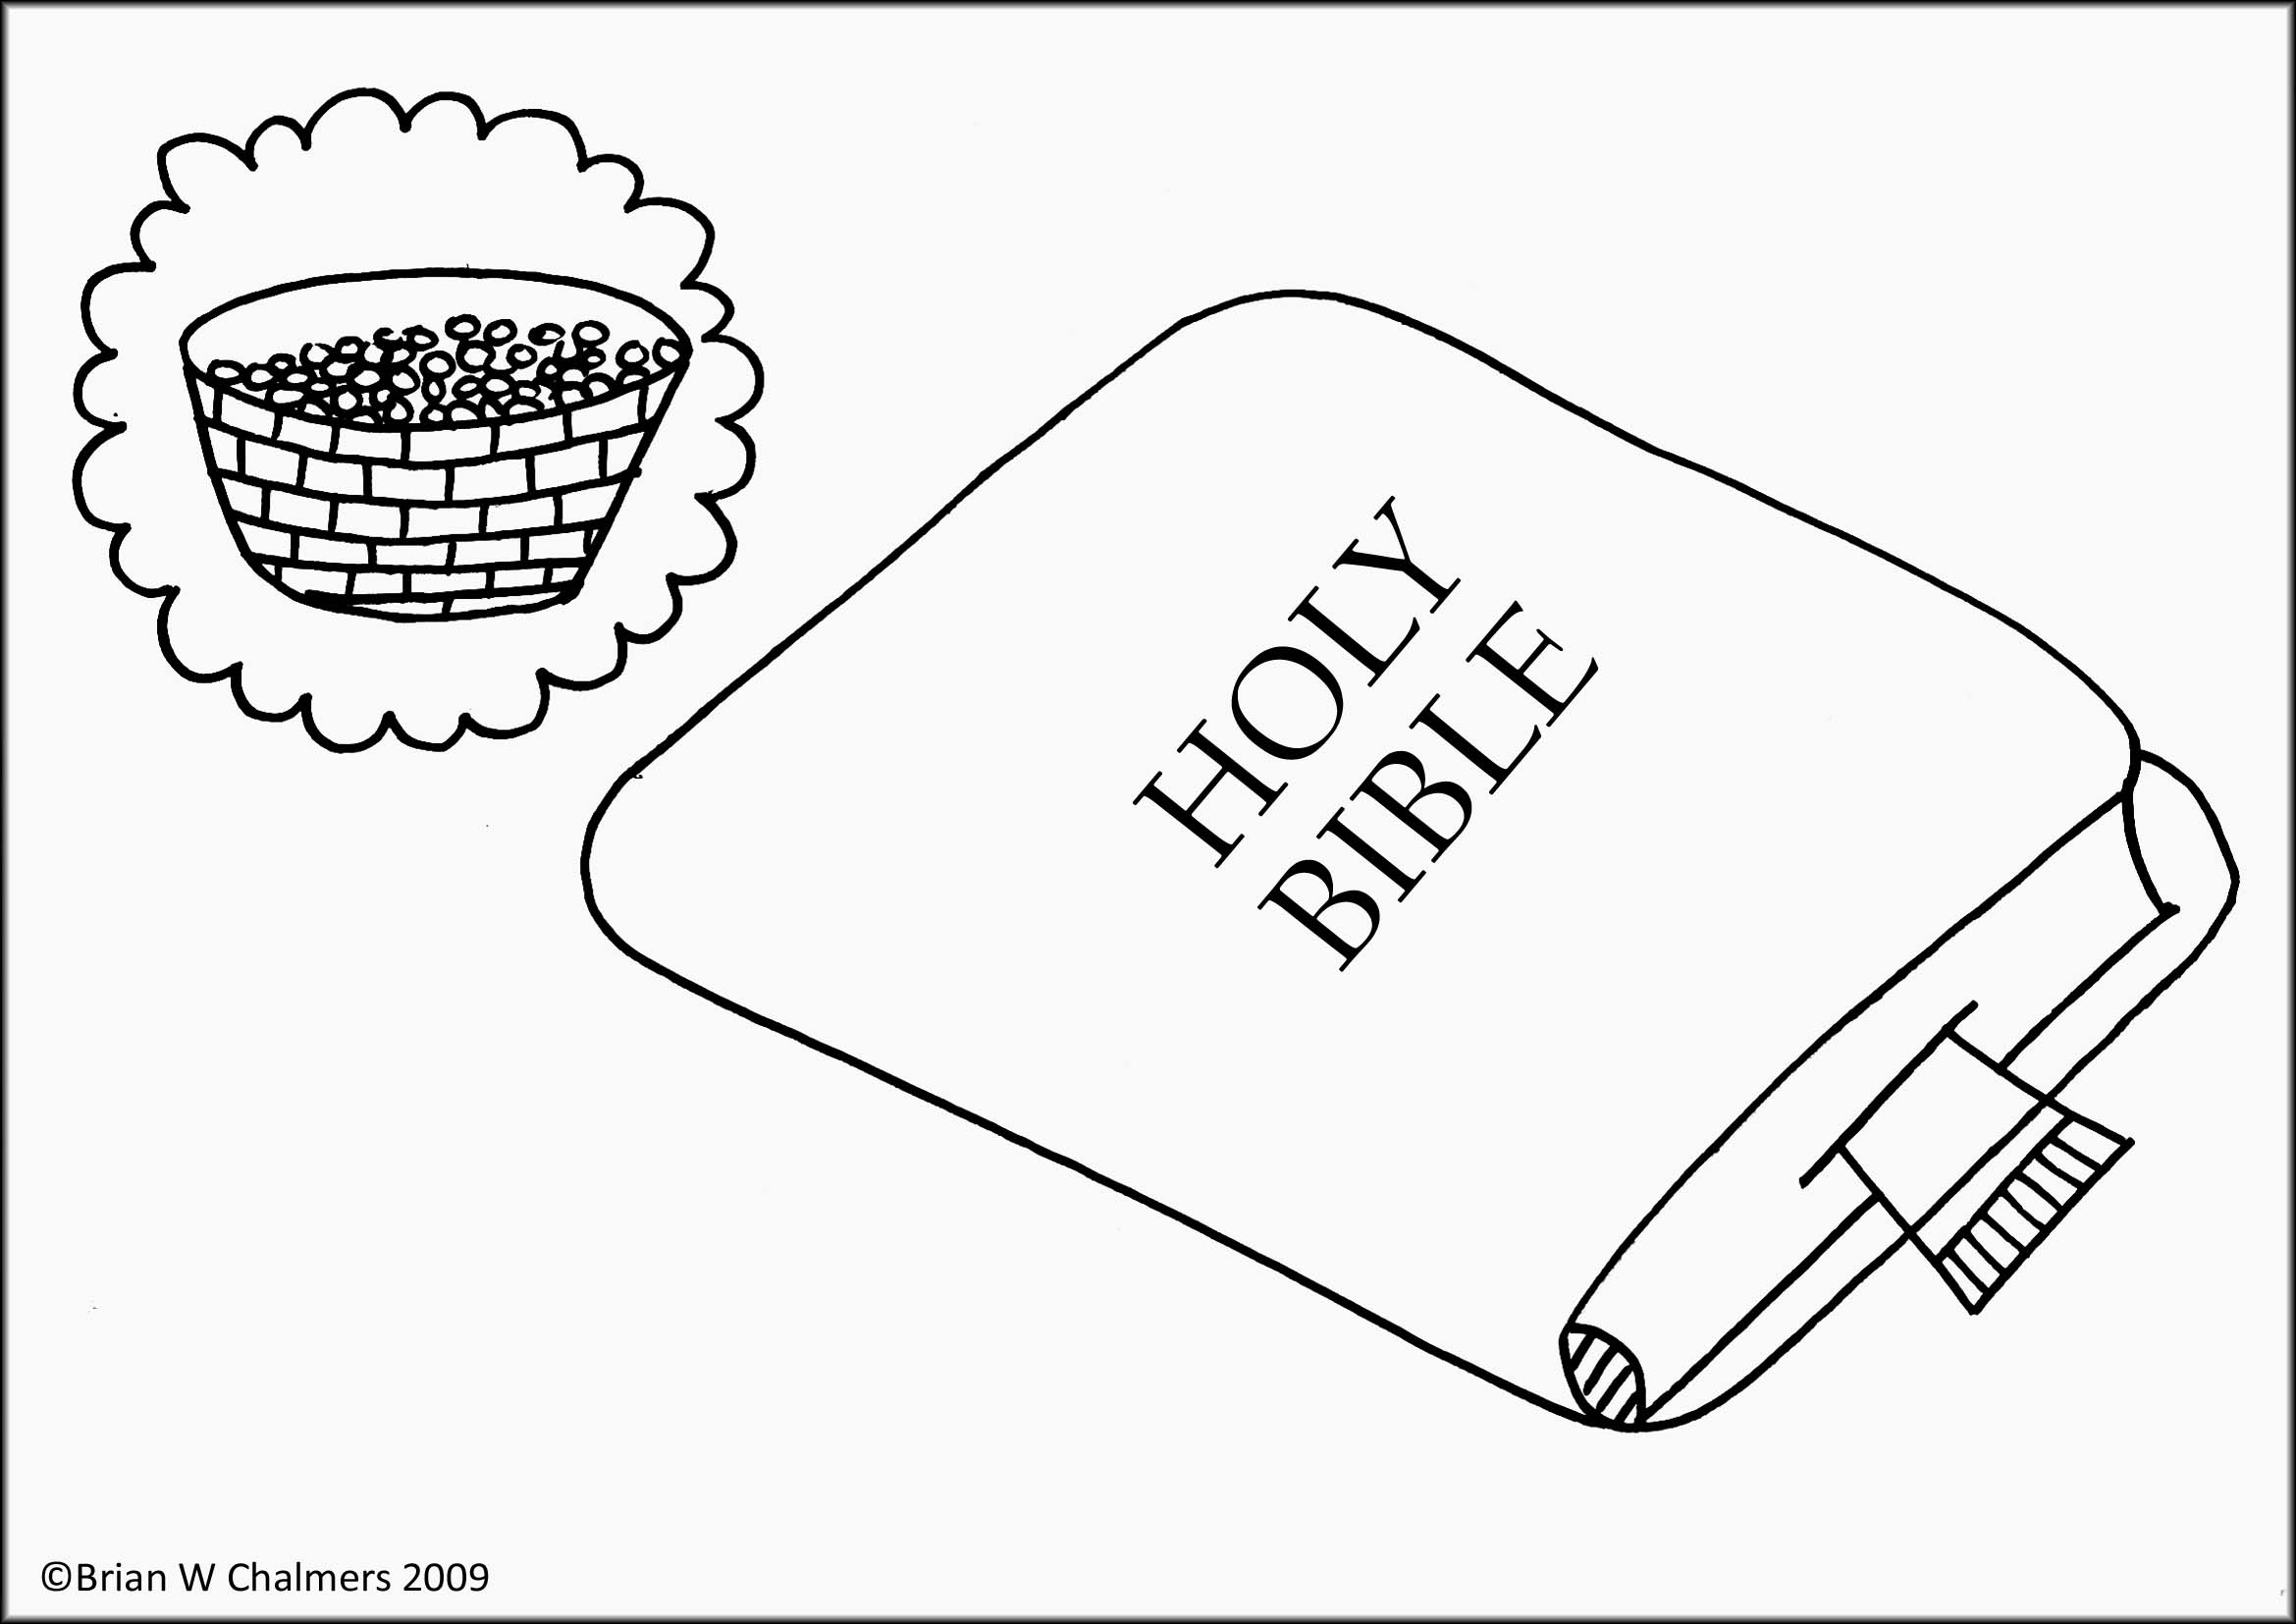 32 Parable Of The Mustard Seed Coloring Pages